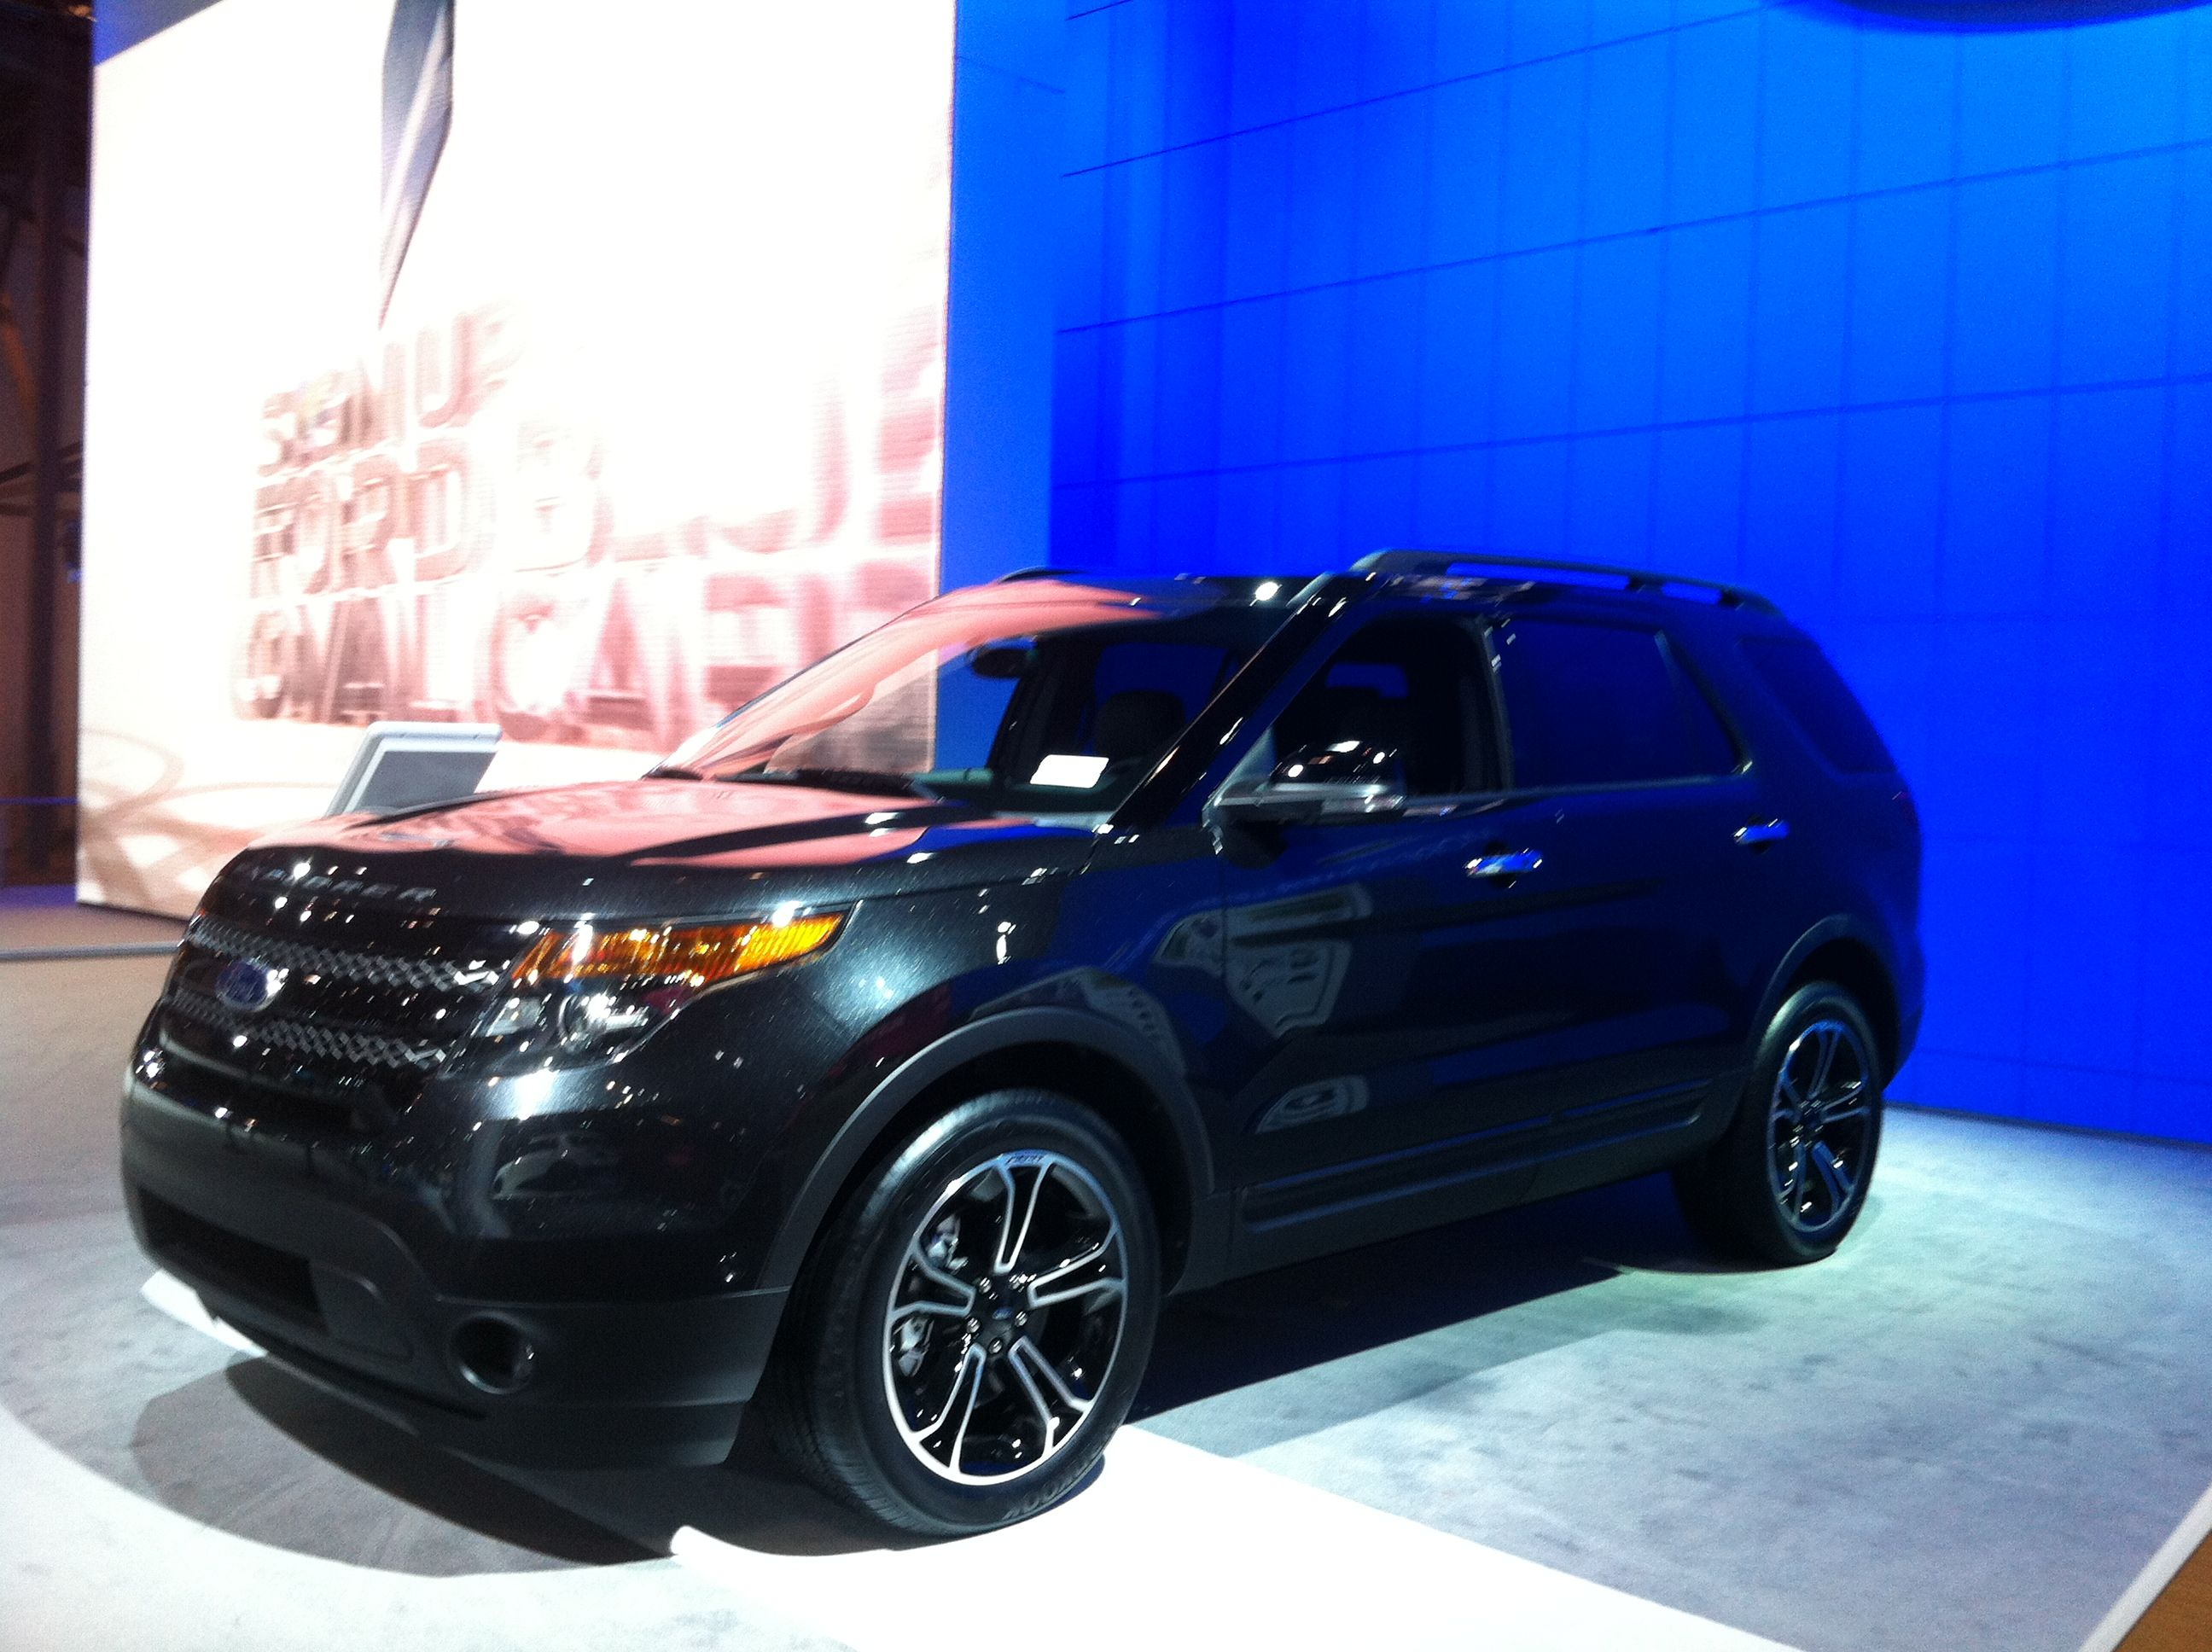 2013 ford explorer in tuxedo black 2012 ny auto show - Ford Explorer 2012 Black